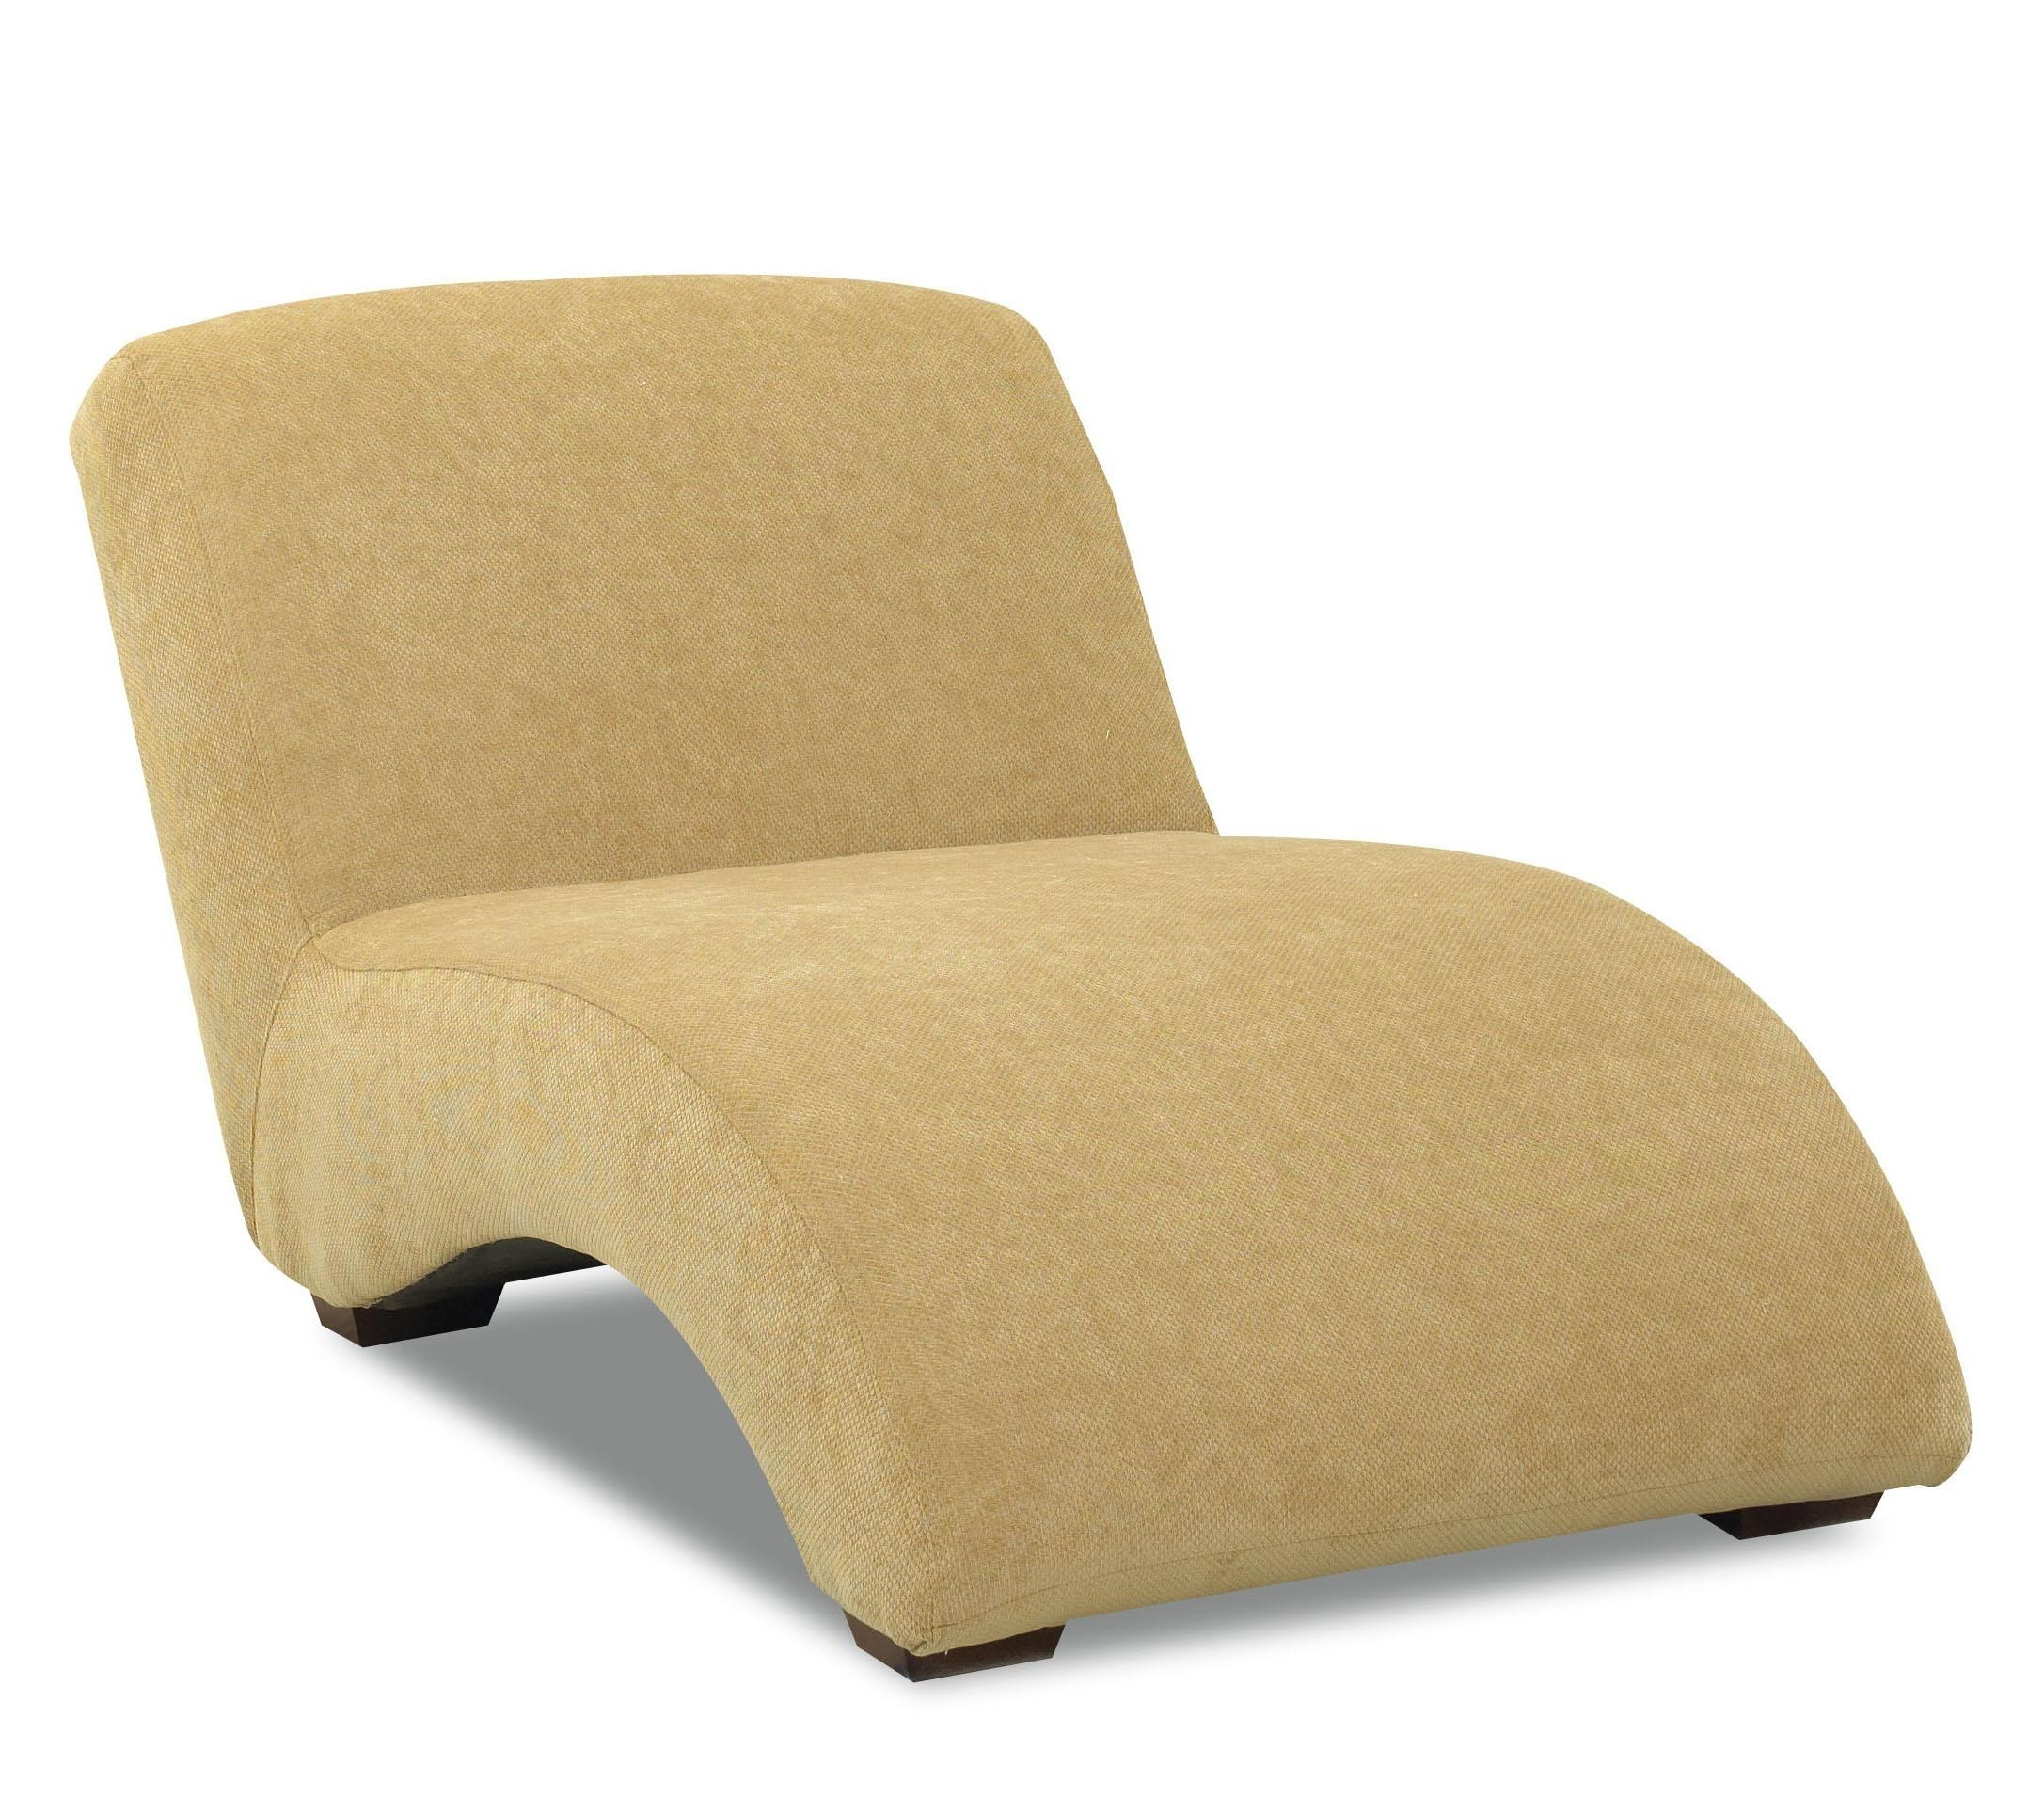 Slipcovers For Armless Lounge Chairs | Lounge Chairs And Office Chairs With Regard To Armless Slipcovers (Image 20 of 20)